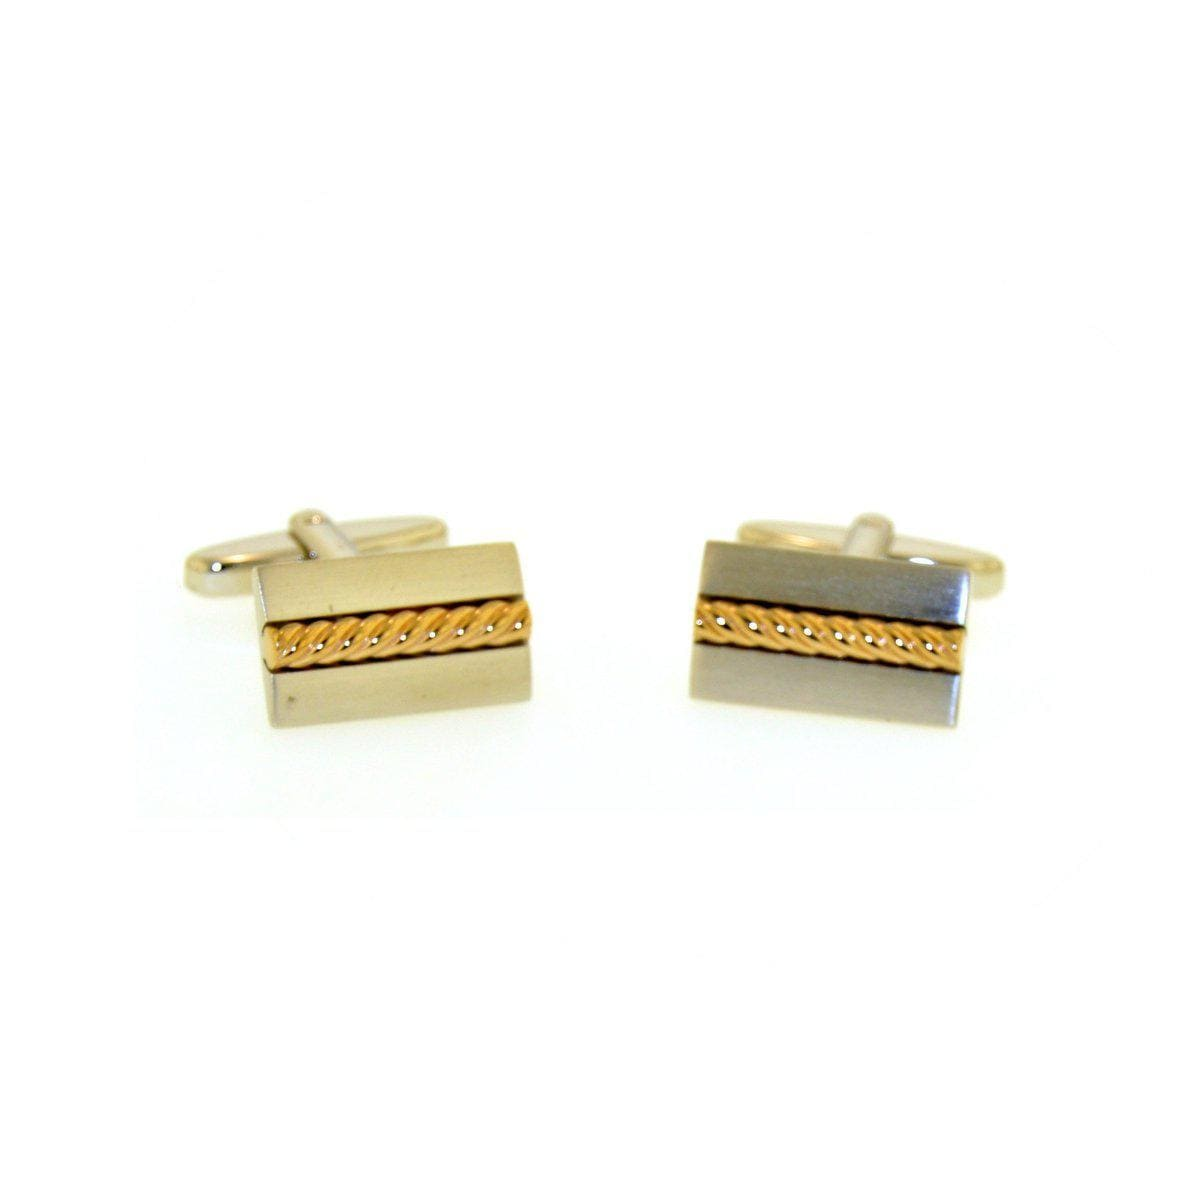 Rose Gold Plated Sterling Silver Cufflinks - 84/00083-0-RH/R-Breuning-Renee Taylor Gallery